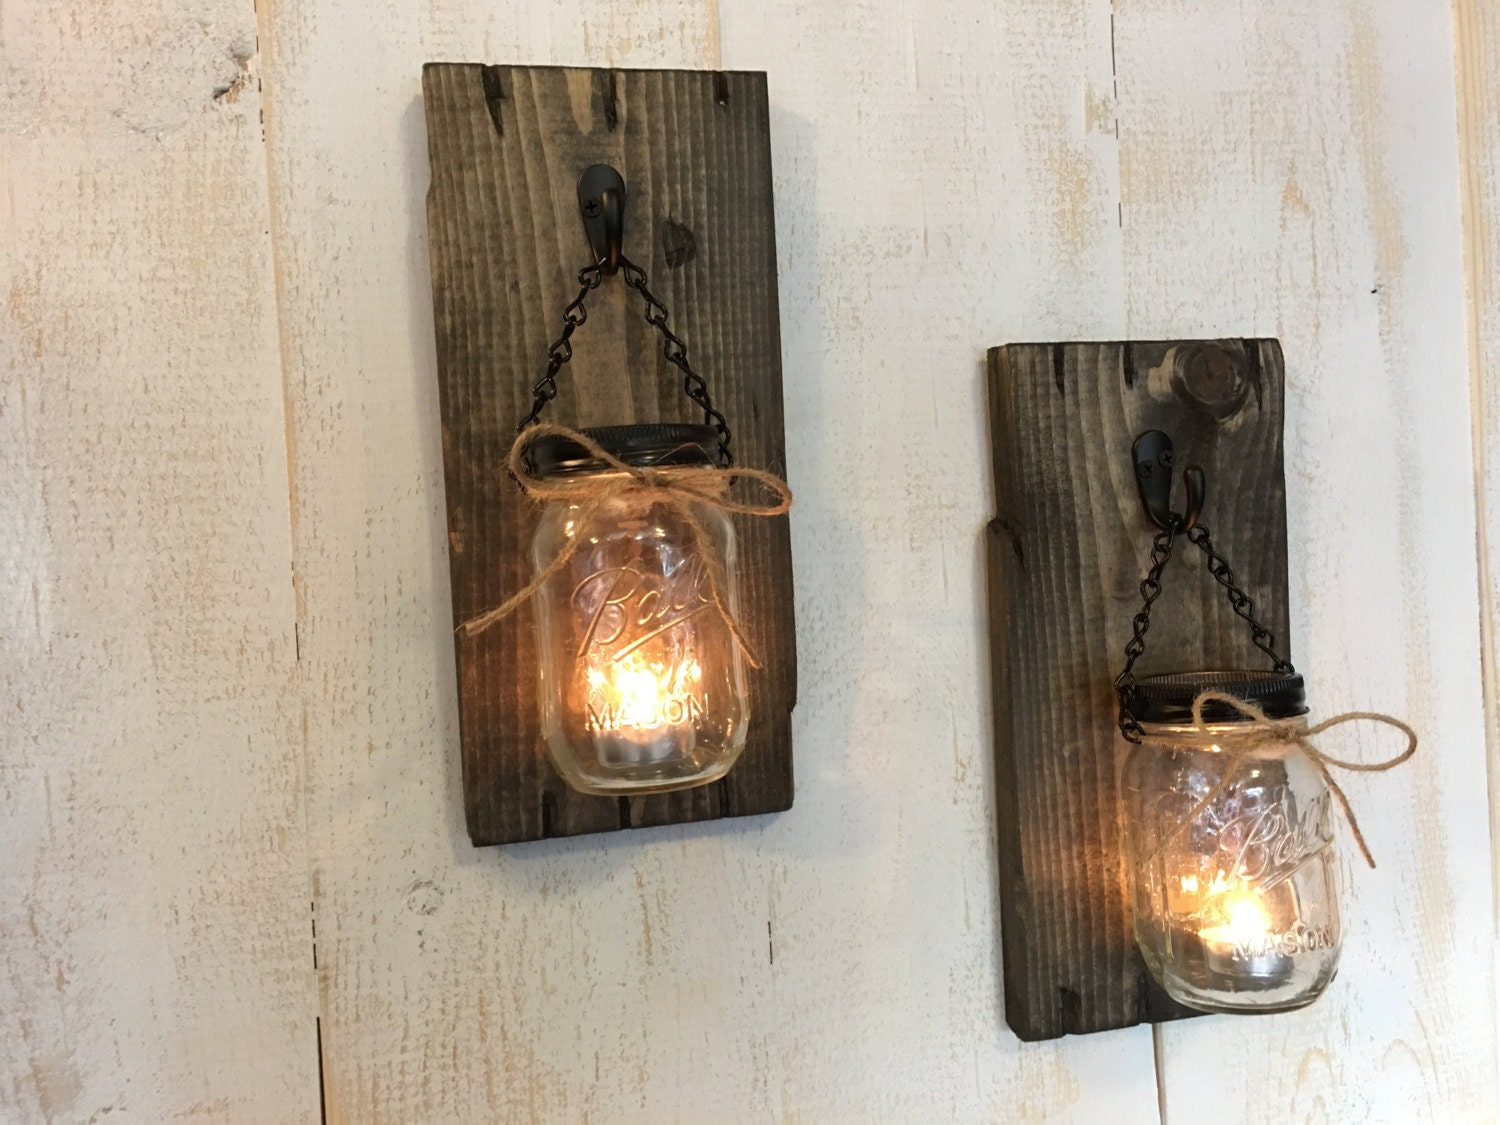 Rustic Wall Sconces For Candles : Candle holders, Rustic candle holders, Candles, Mason jar candles, Candle decor, Wall Sconces ...